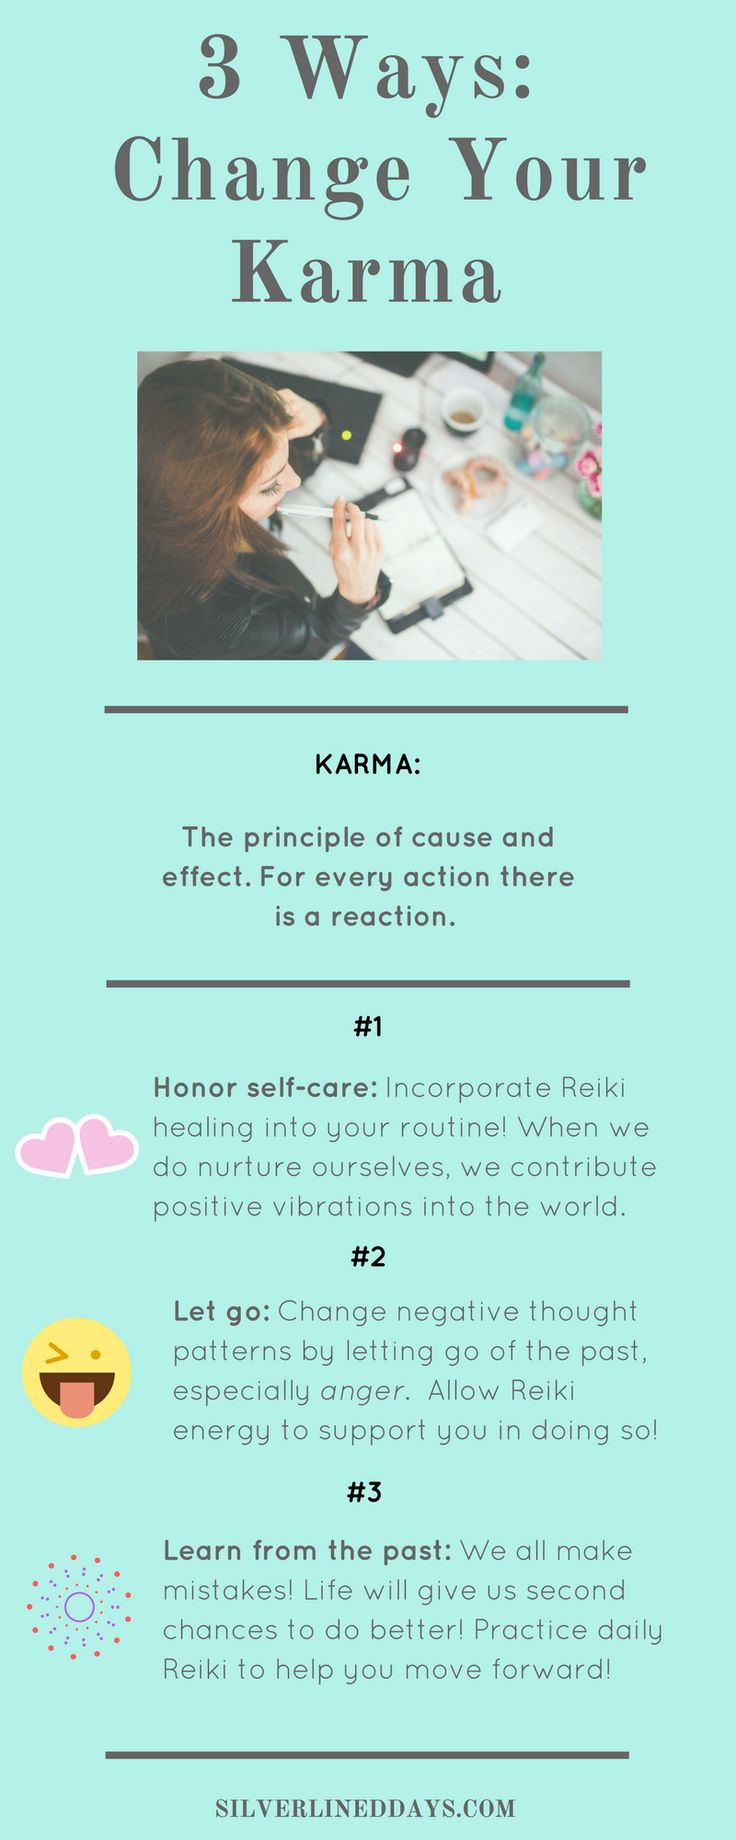 Regretting your last mistake? Here's how you can change your karma in an instant... reiki healing | positive thinking | positive mindset | energy healing | raise vibrations | law of attraction | chakra balancing | happiness | spirituality